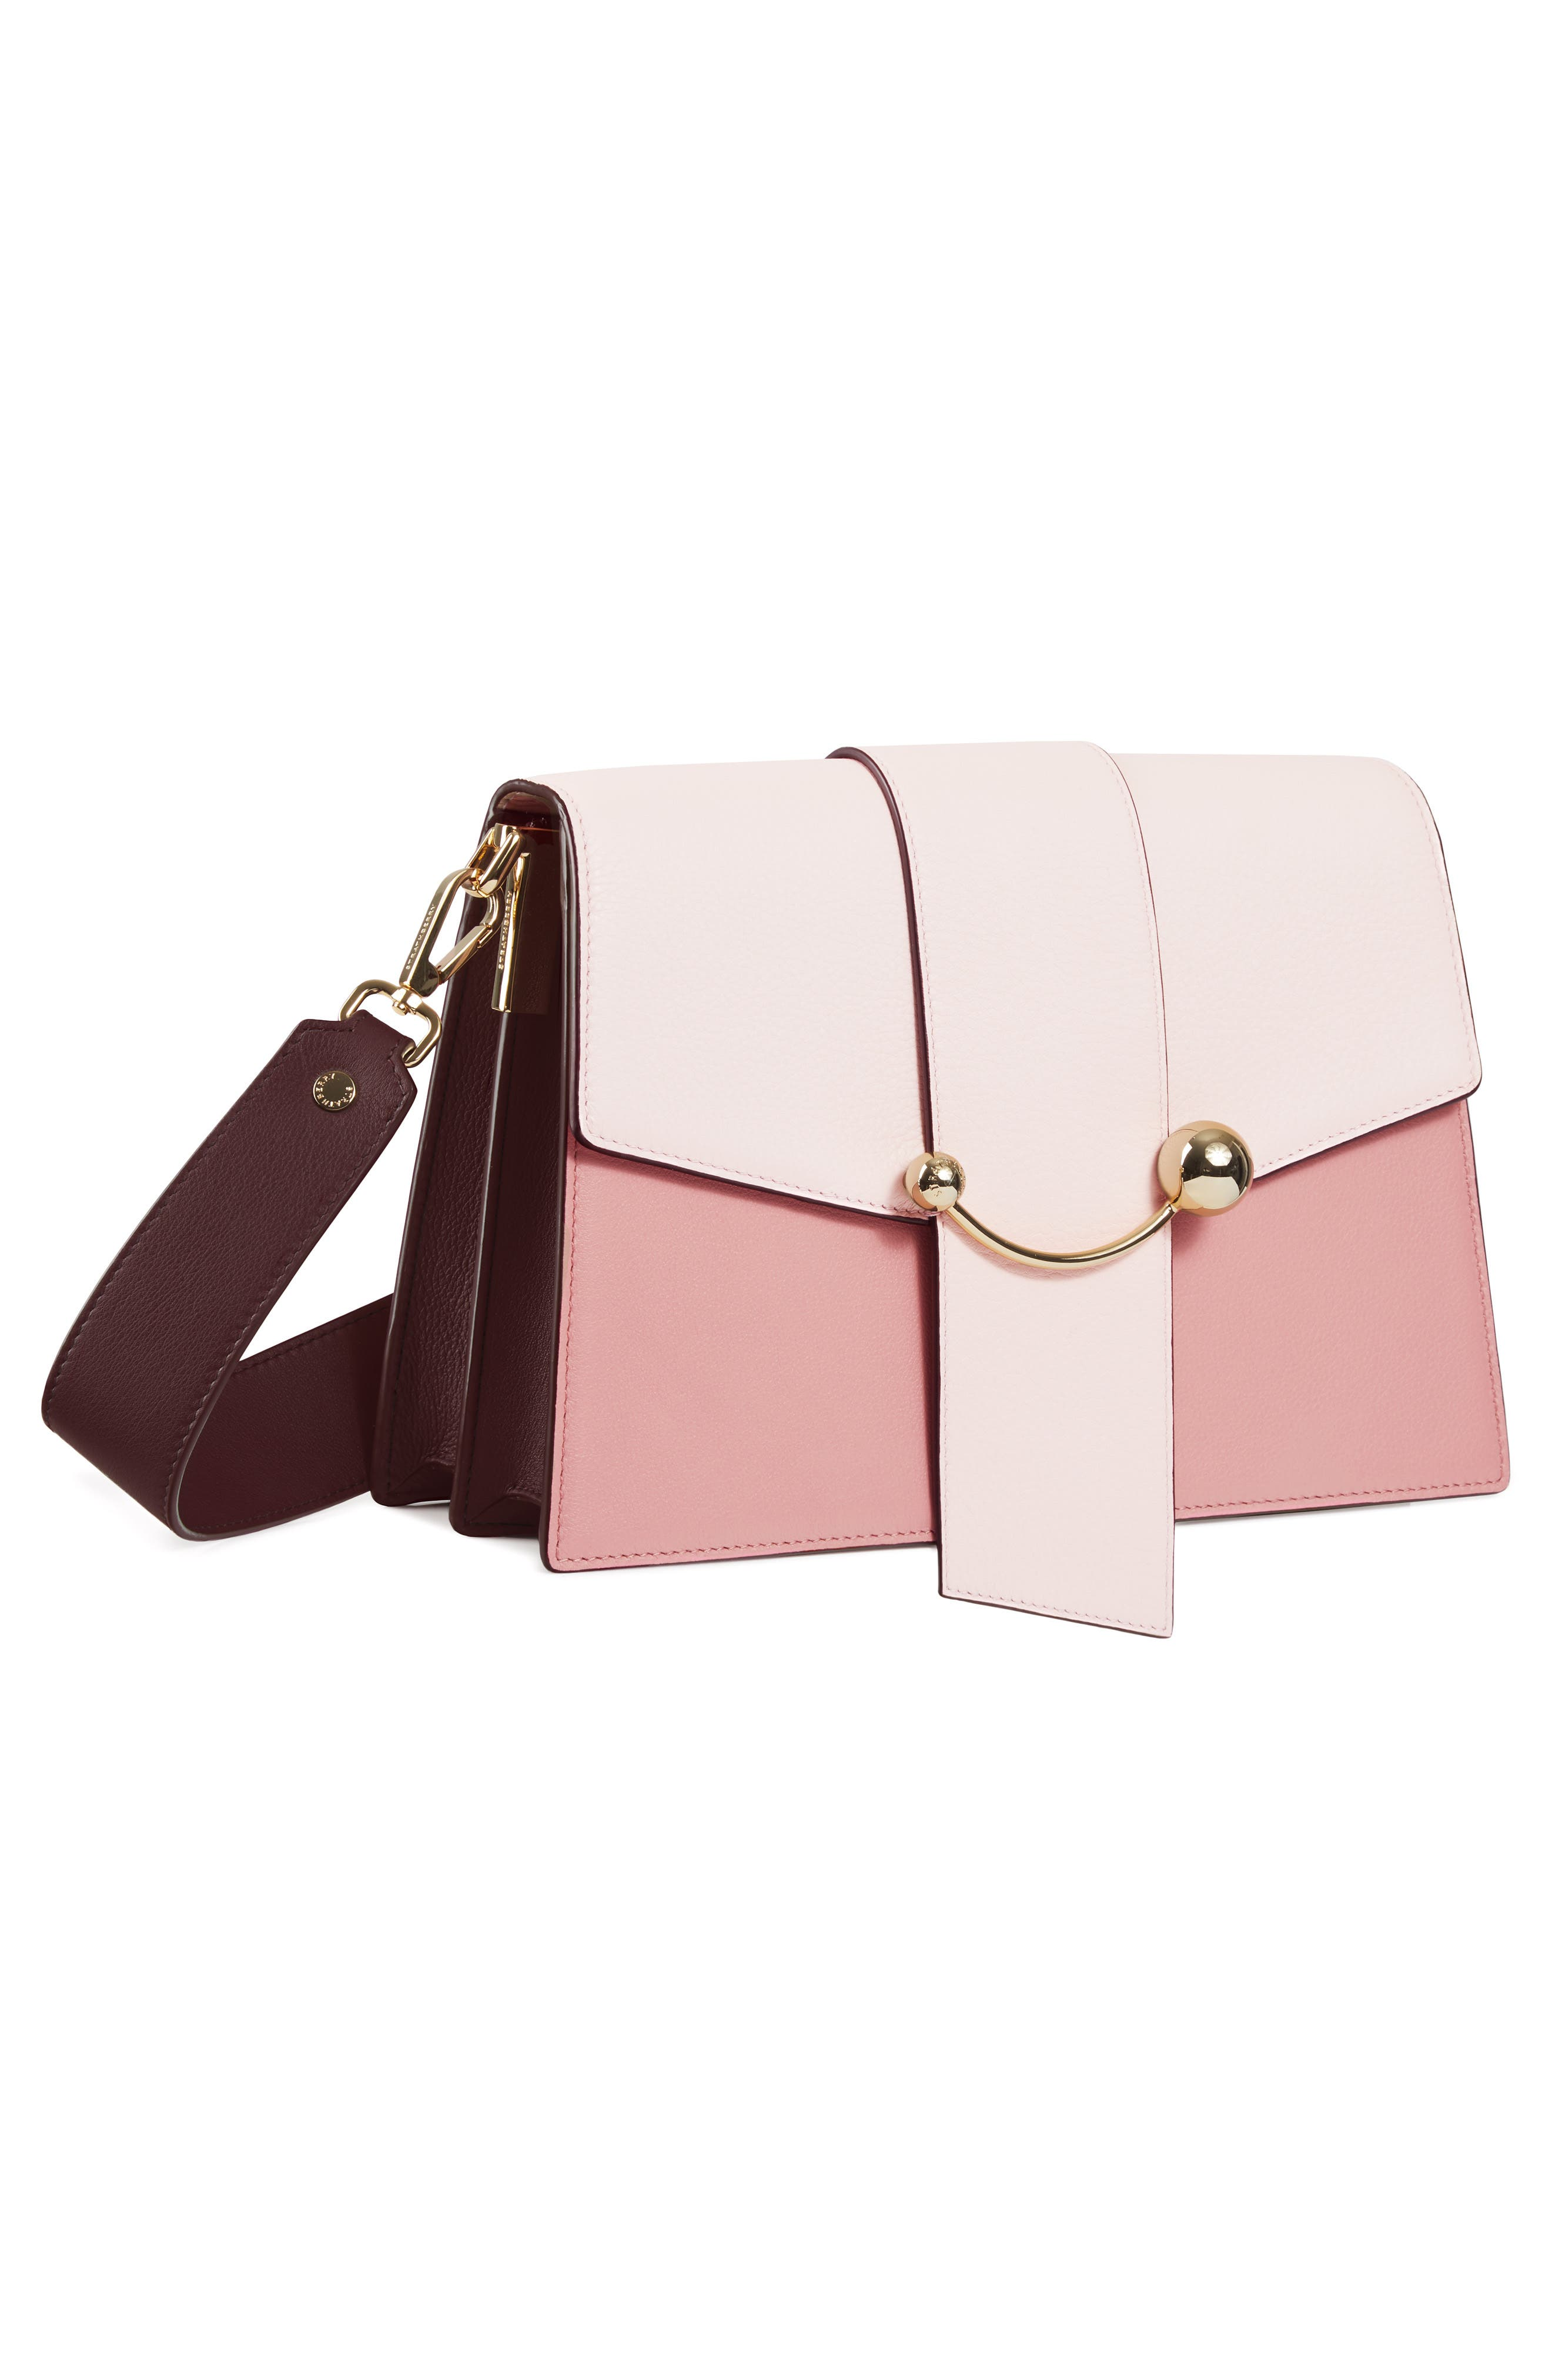 STRATHBERRY, Mini Crescent Leather Clutch, Alternate thumbnail 4, color, BABY PINK/ ROSE/ BURGUNDY